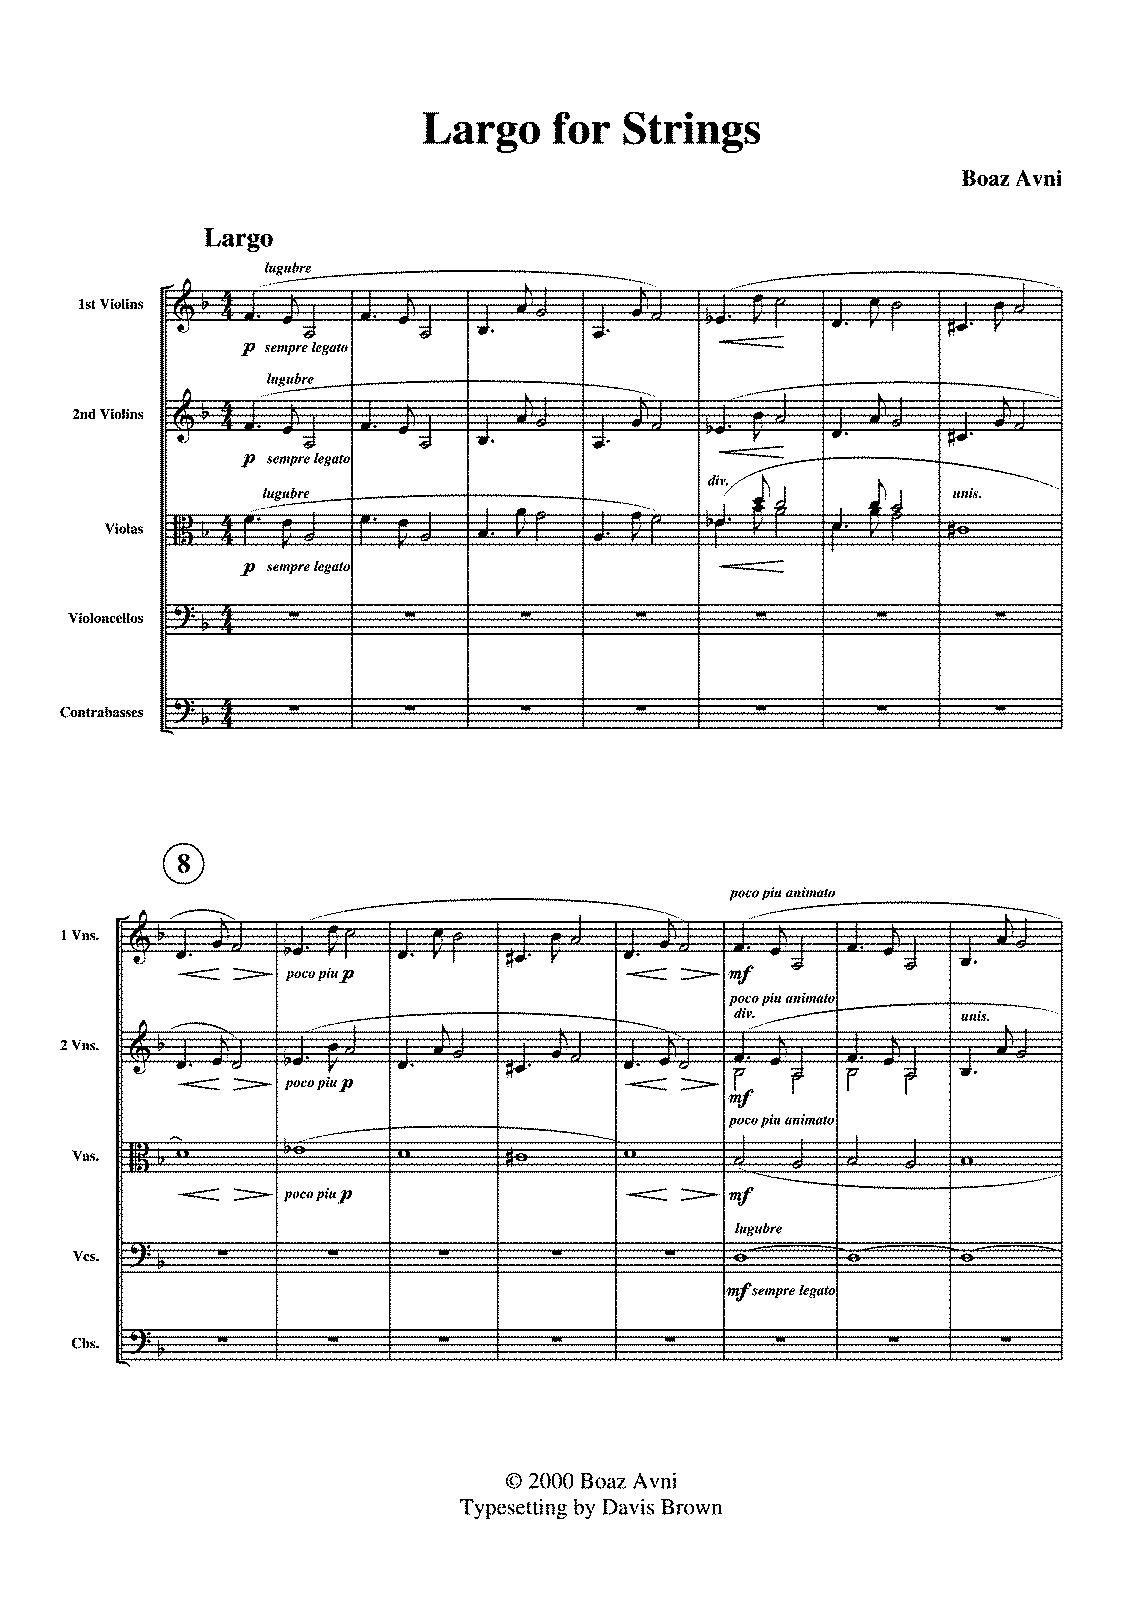 PMLP92666-Boaz Avni - Largo for Strings - Score.pdf